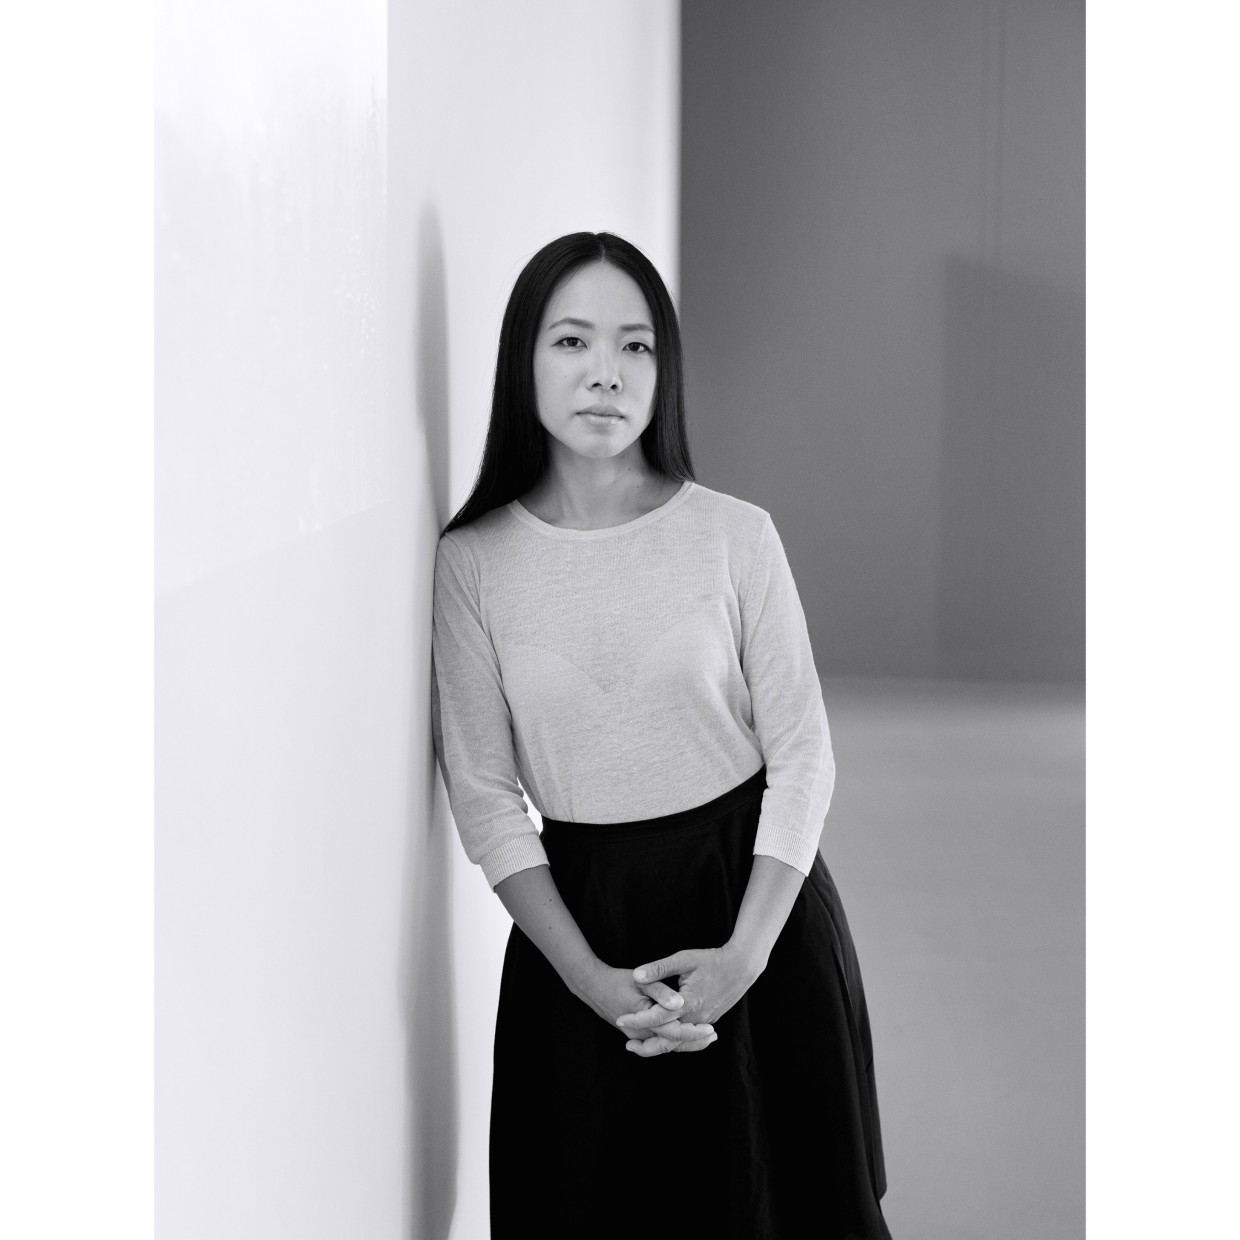 Sim Chi Yin Sim Chi Yin is an artist from Singapore whose research-based practice includes photography, moving image, archival interventions...